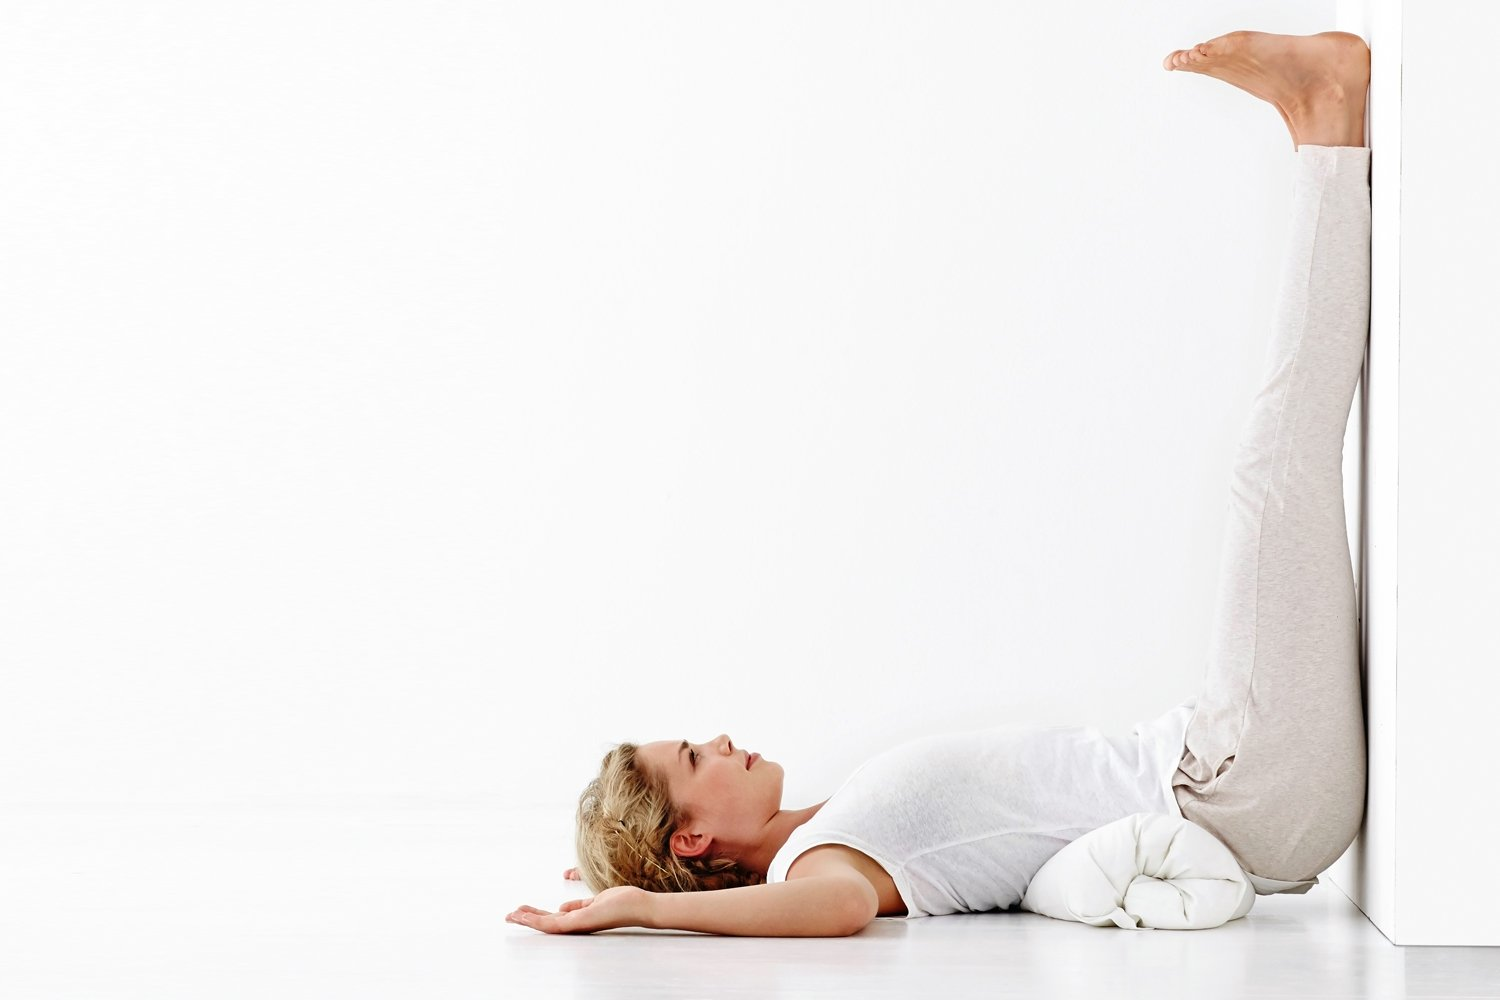 Legs Up The Wall Benefits Fertility